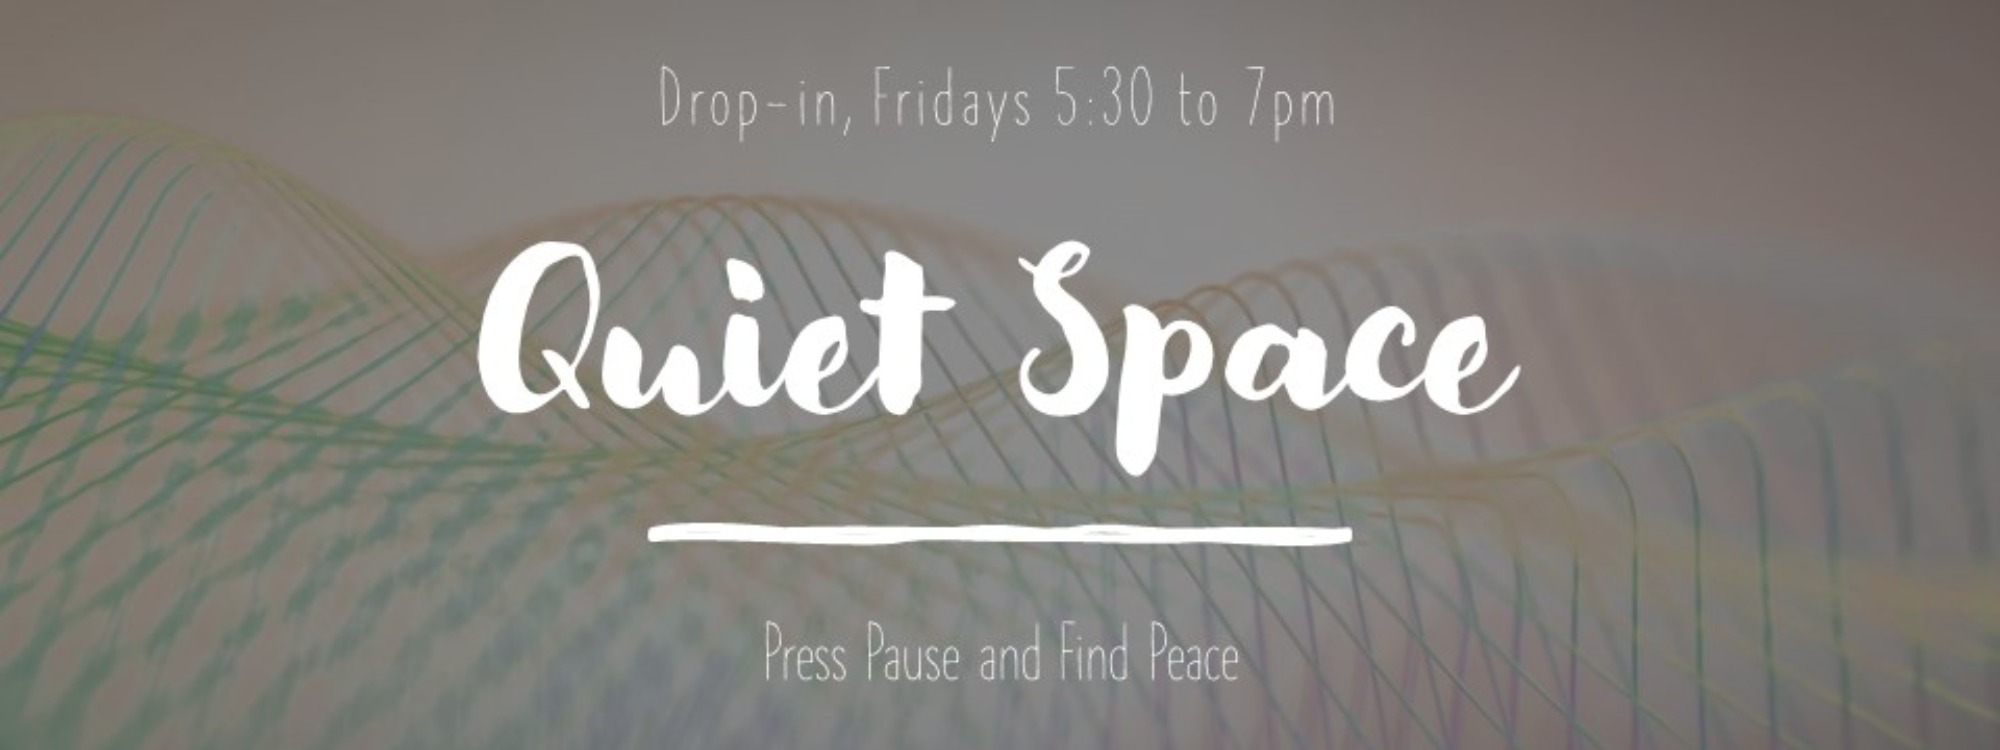 Press pause and find peace* Friday drop in between 12:30 and 2:30pm* All welcome